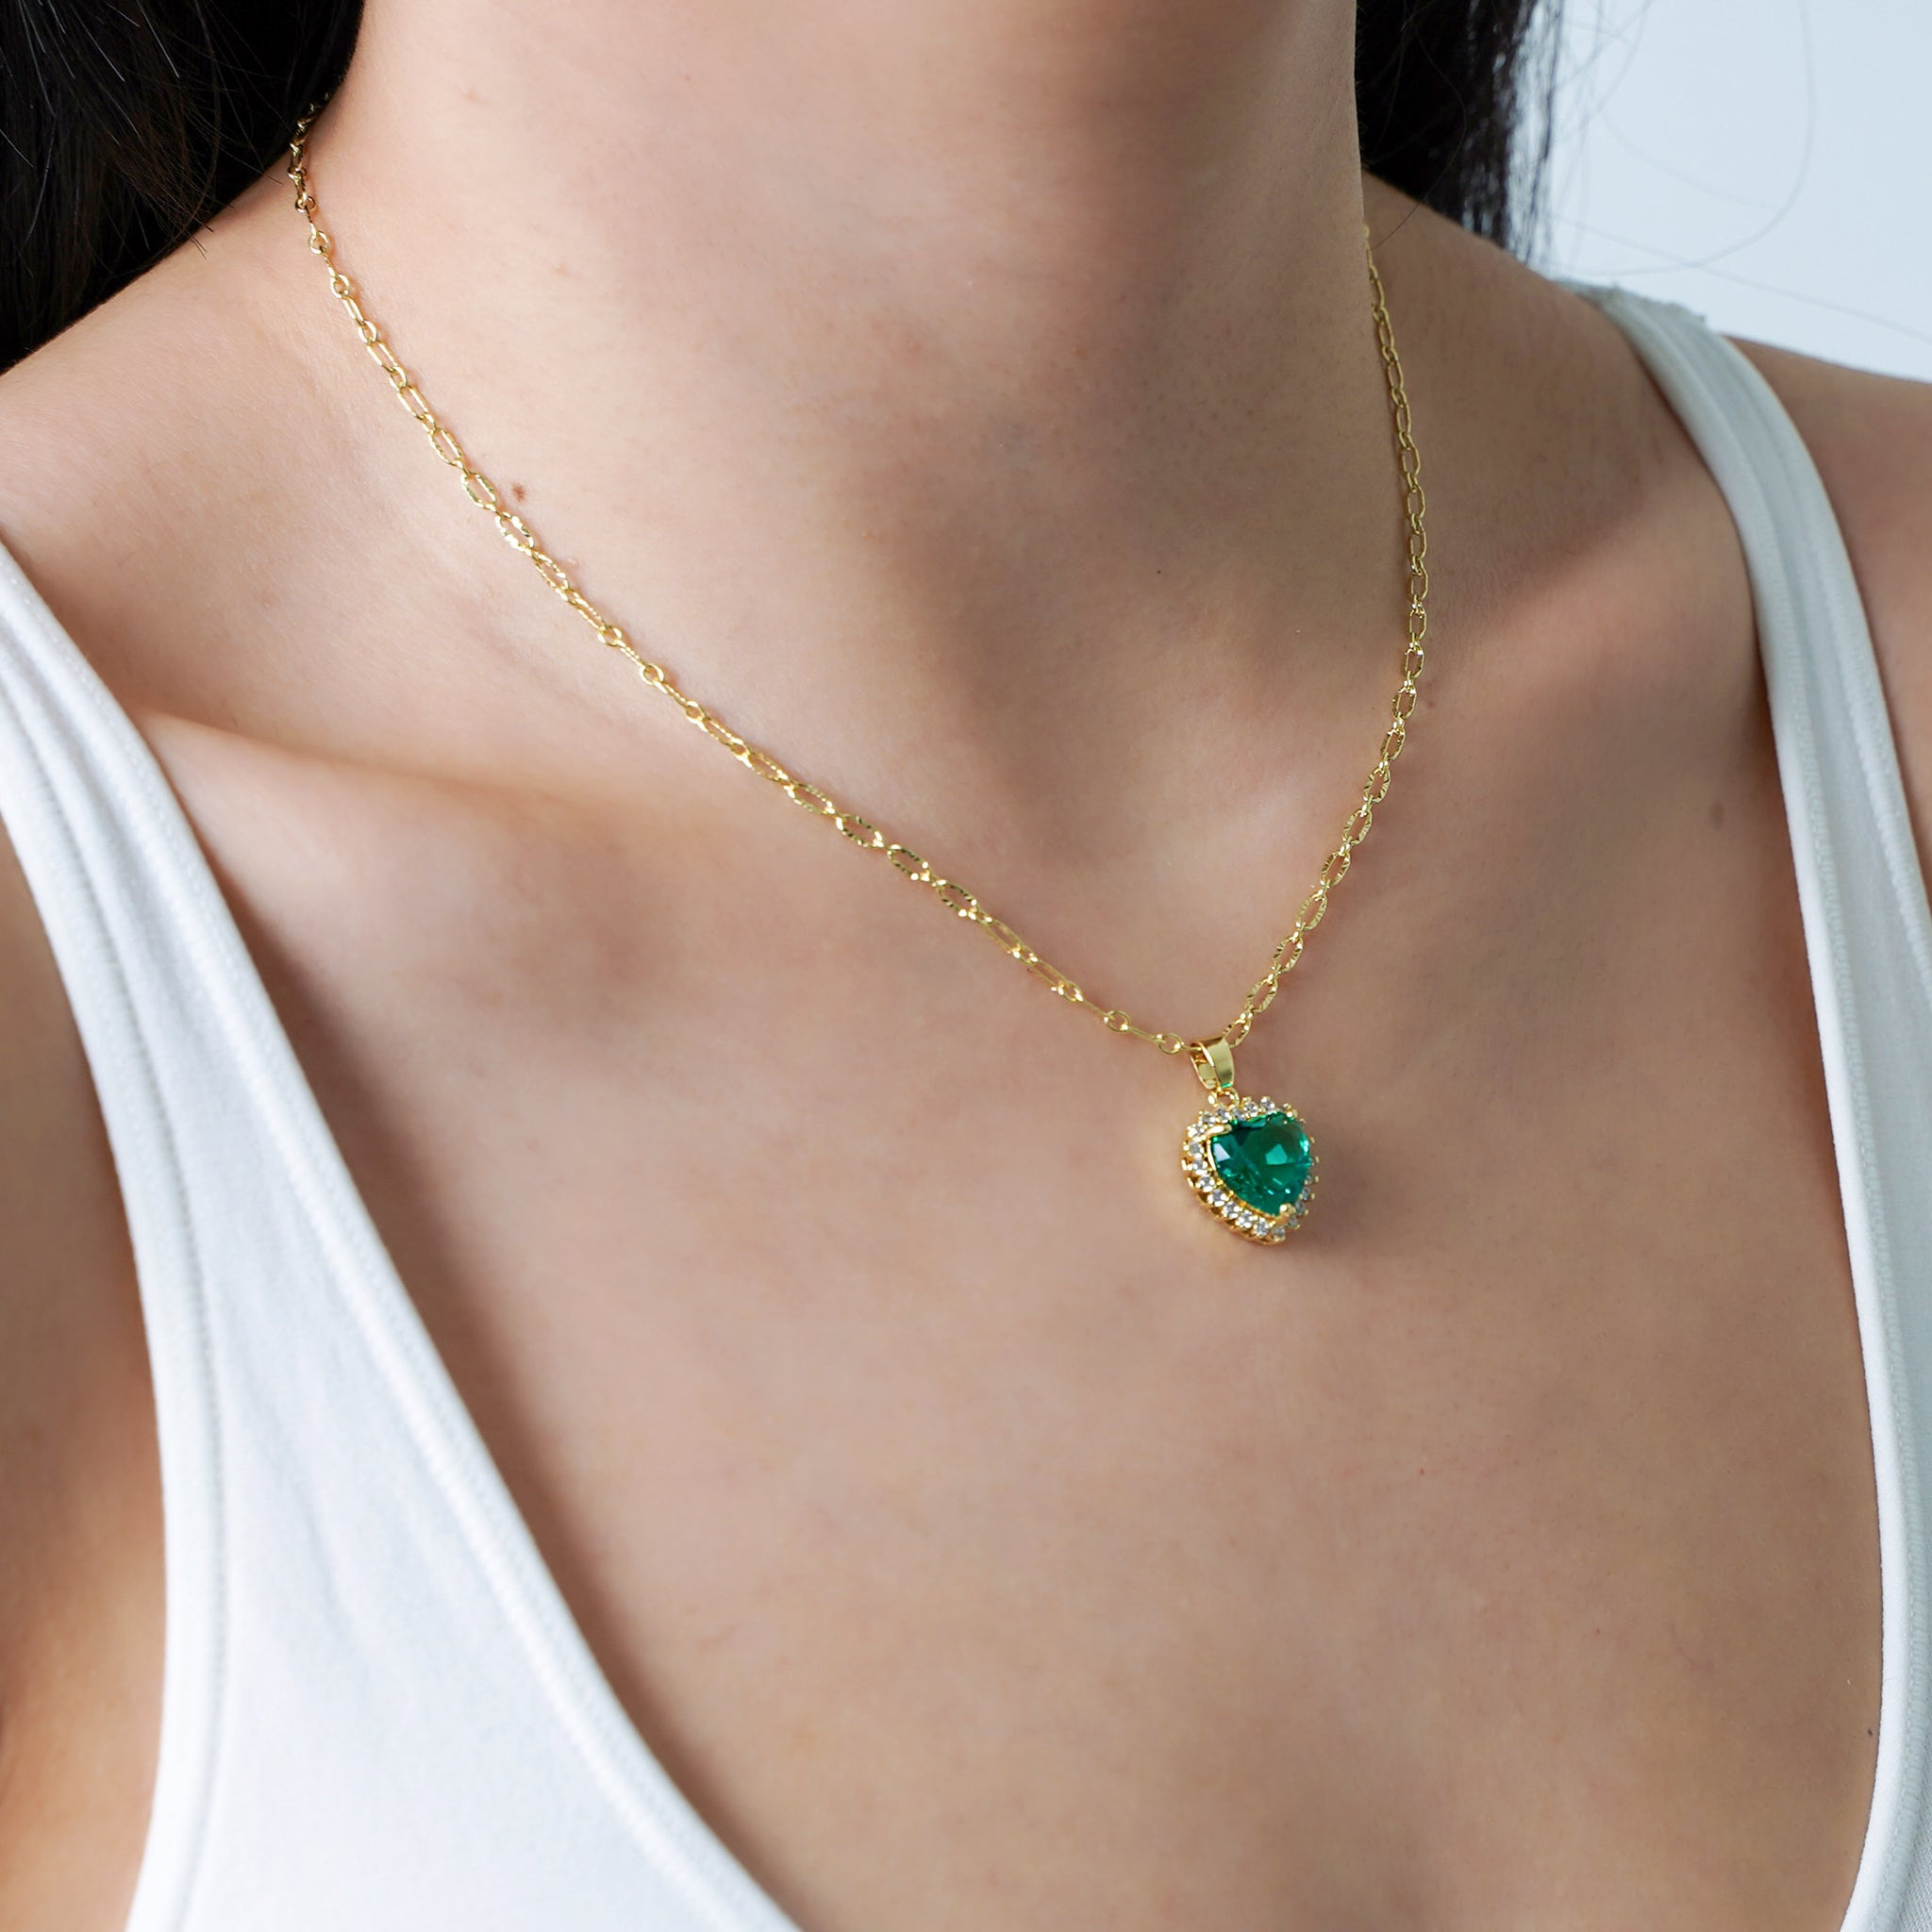 Buy 1 Free 1: Emerald Self-Love Necklace